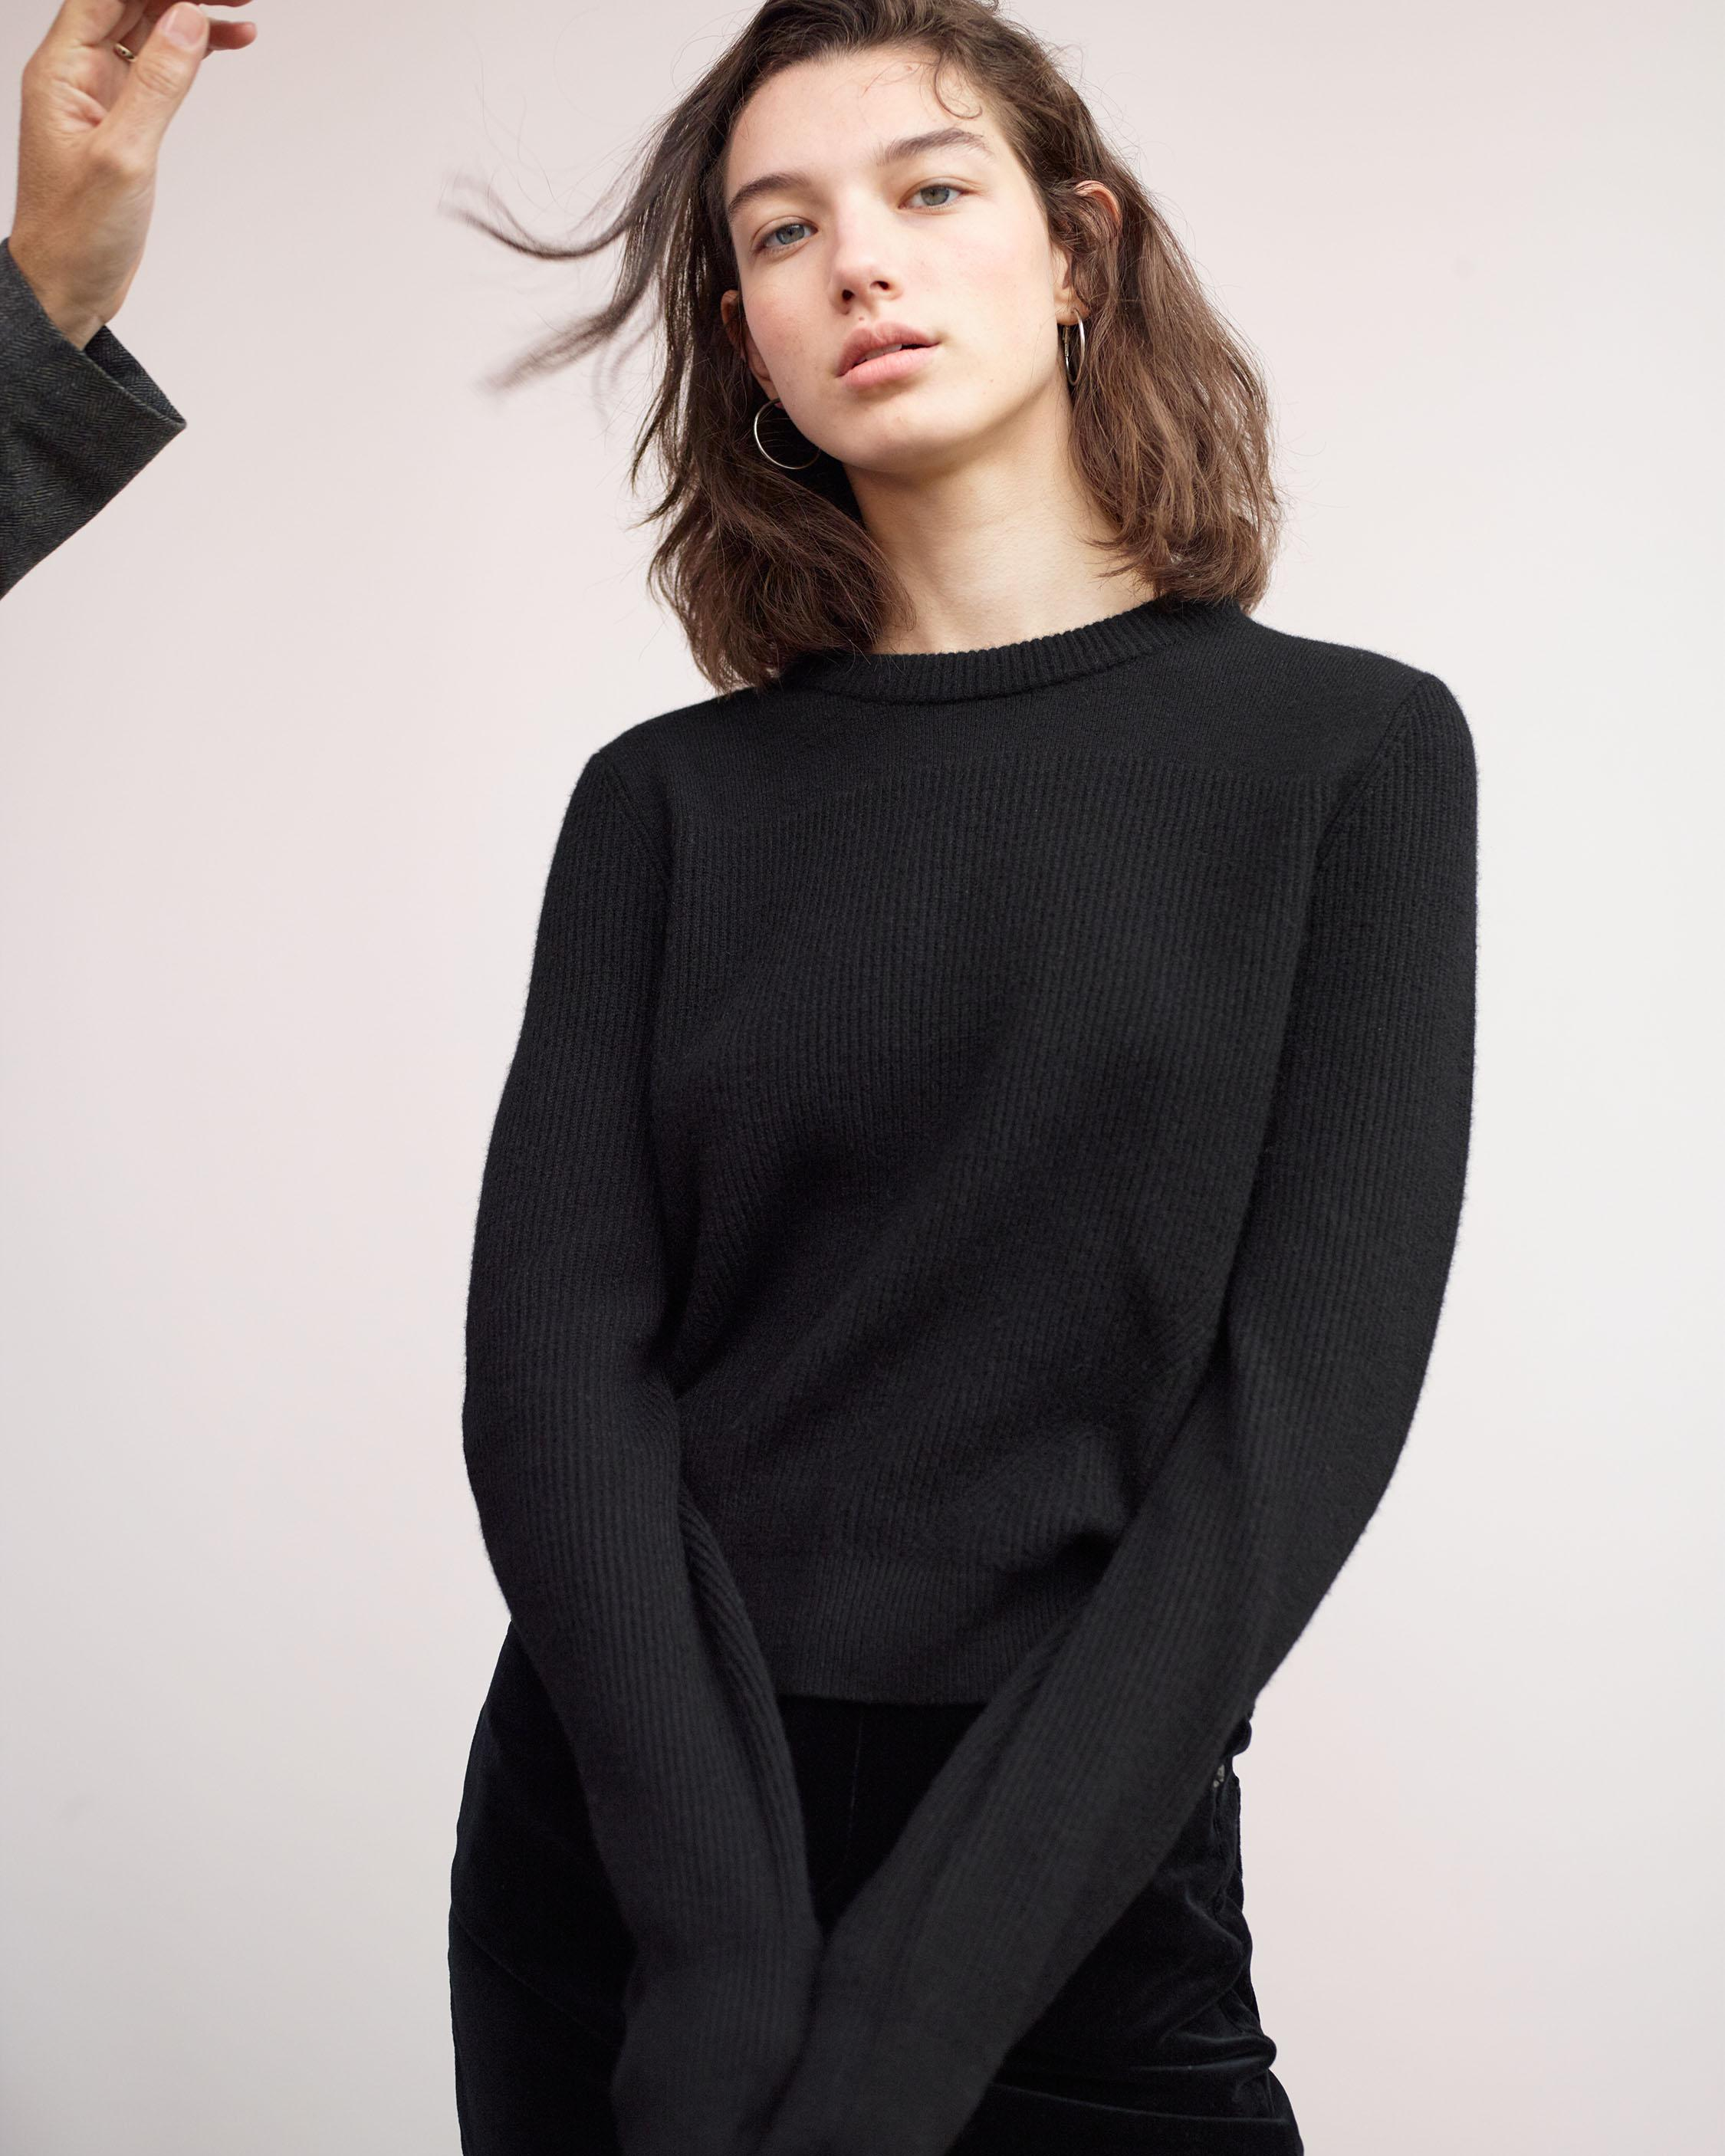 Women's Top, Sweaters and Tees with an Urban Edge | rag & bone